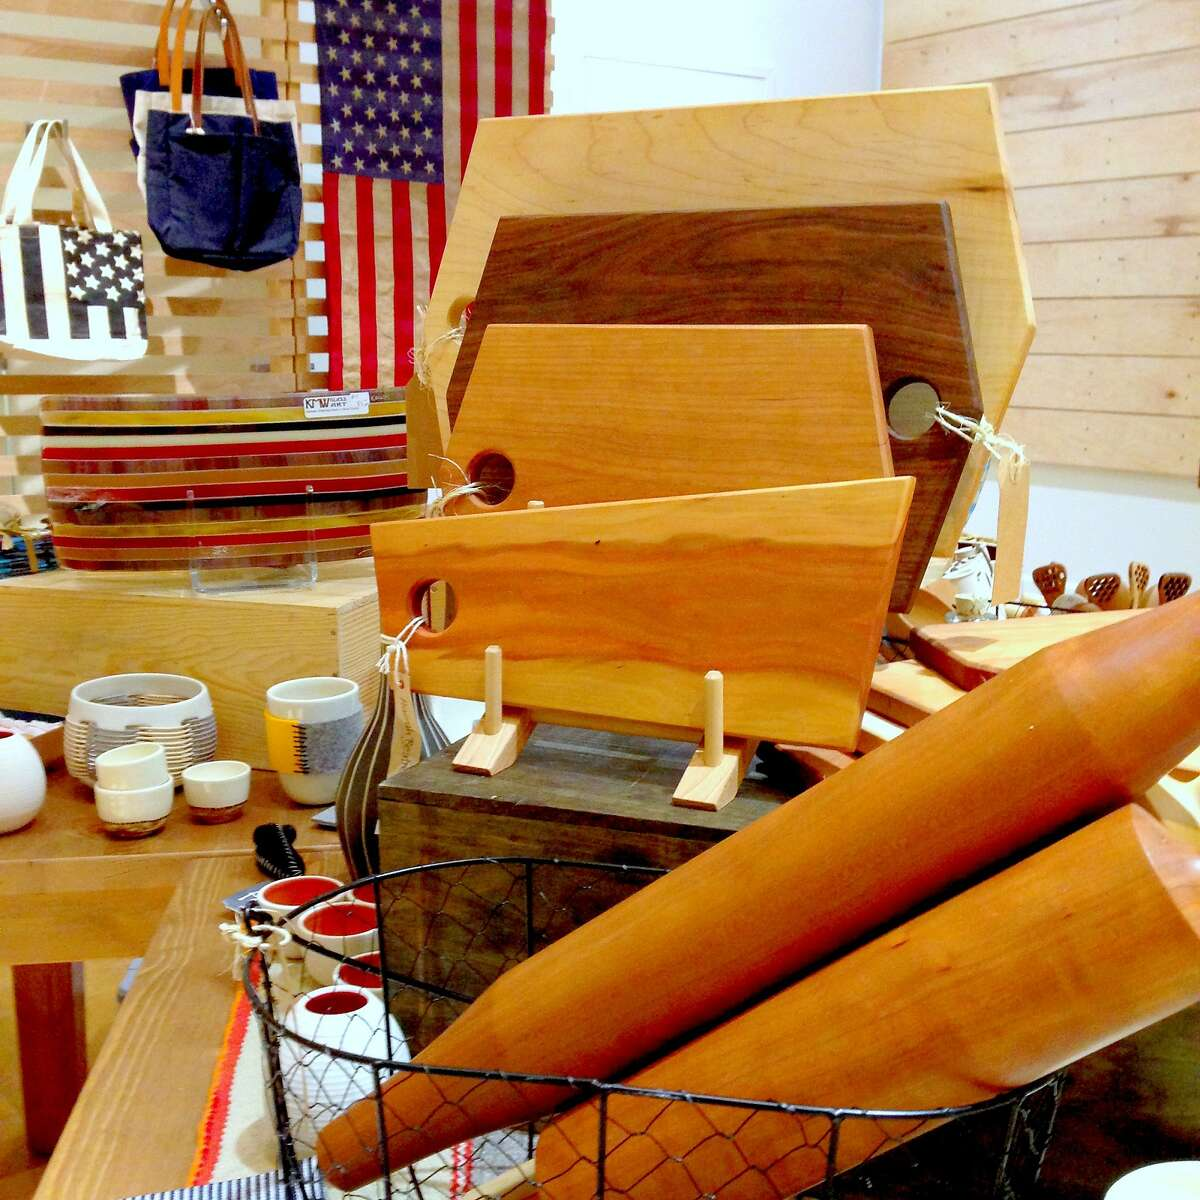 Wooden kitchen accessories at Makers Market at the Westfield San Francisco Centre. makersmarket.us